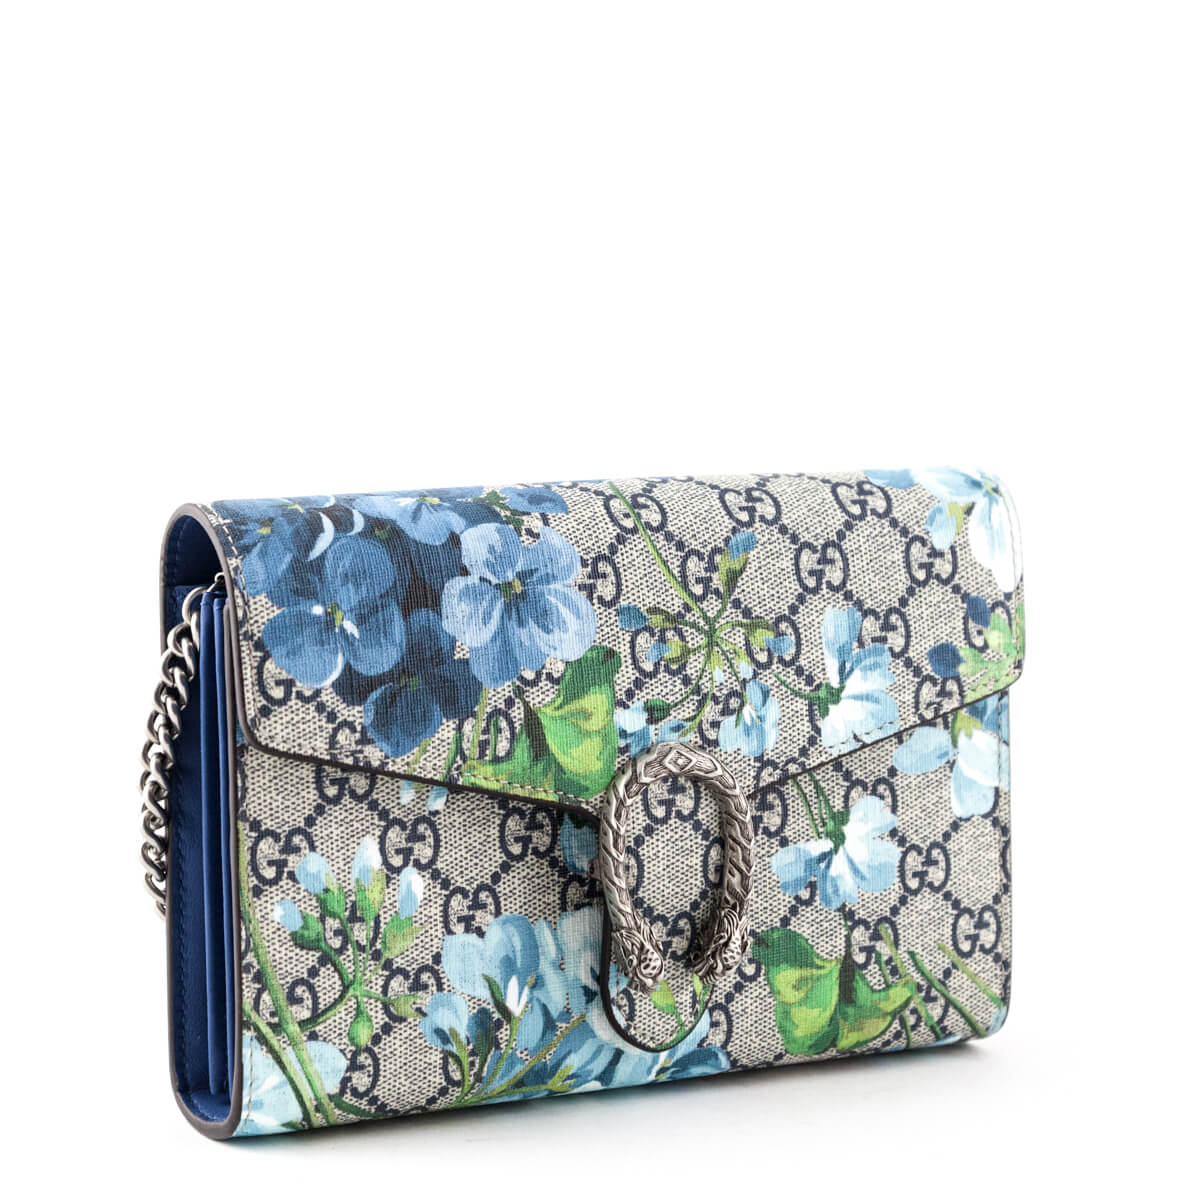 d973984cc35 ... Gucci Blue GG Blooms Dionysus Wallet On Chain - LOVE that BAG -  Preowned Authentic Designer ...